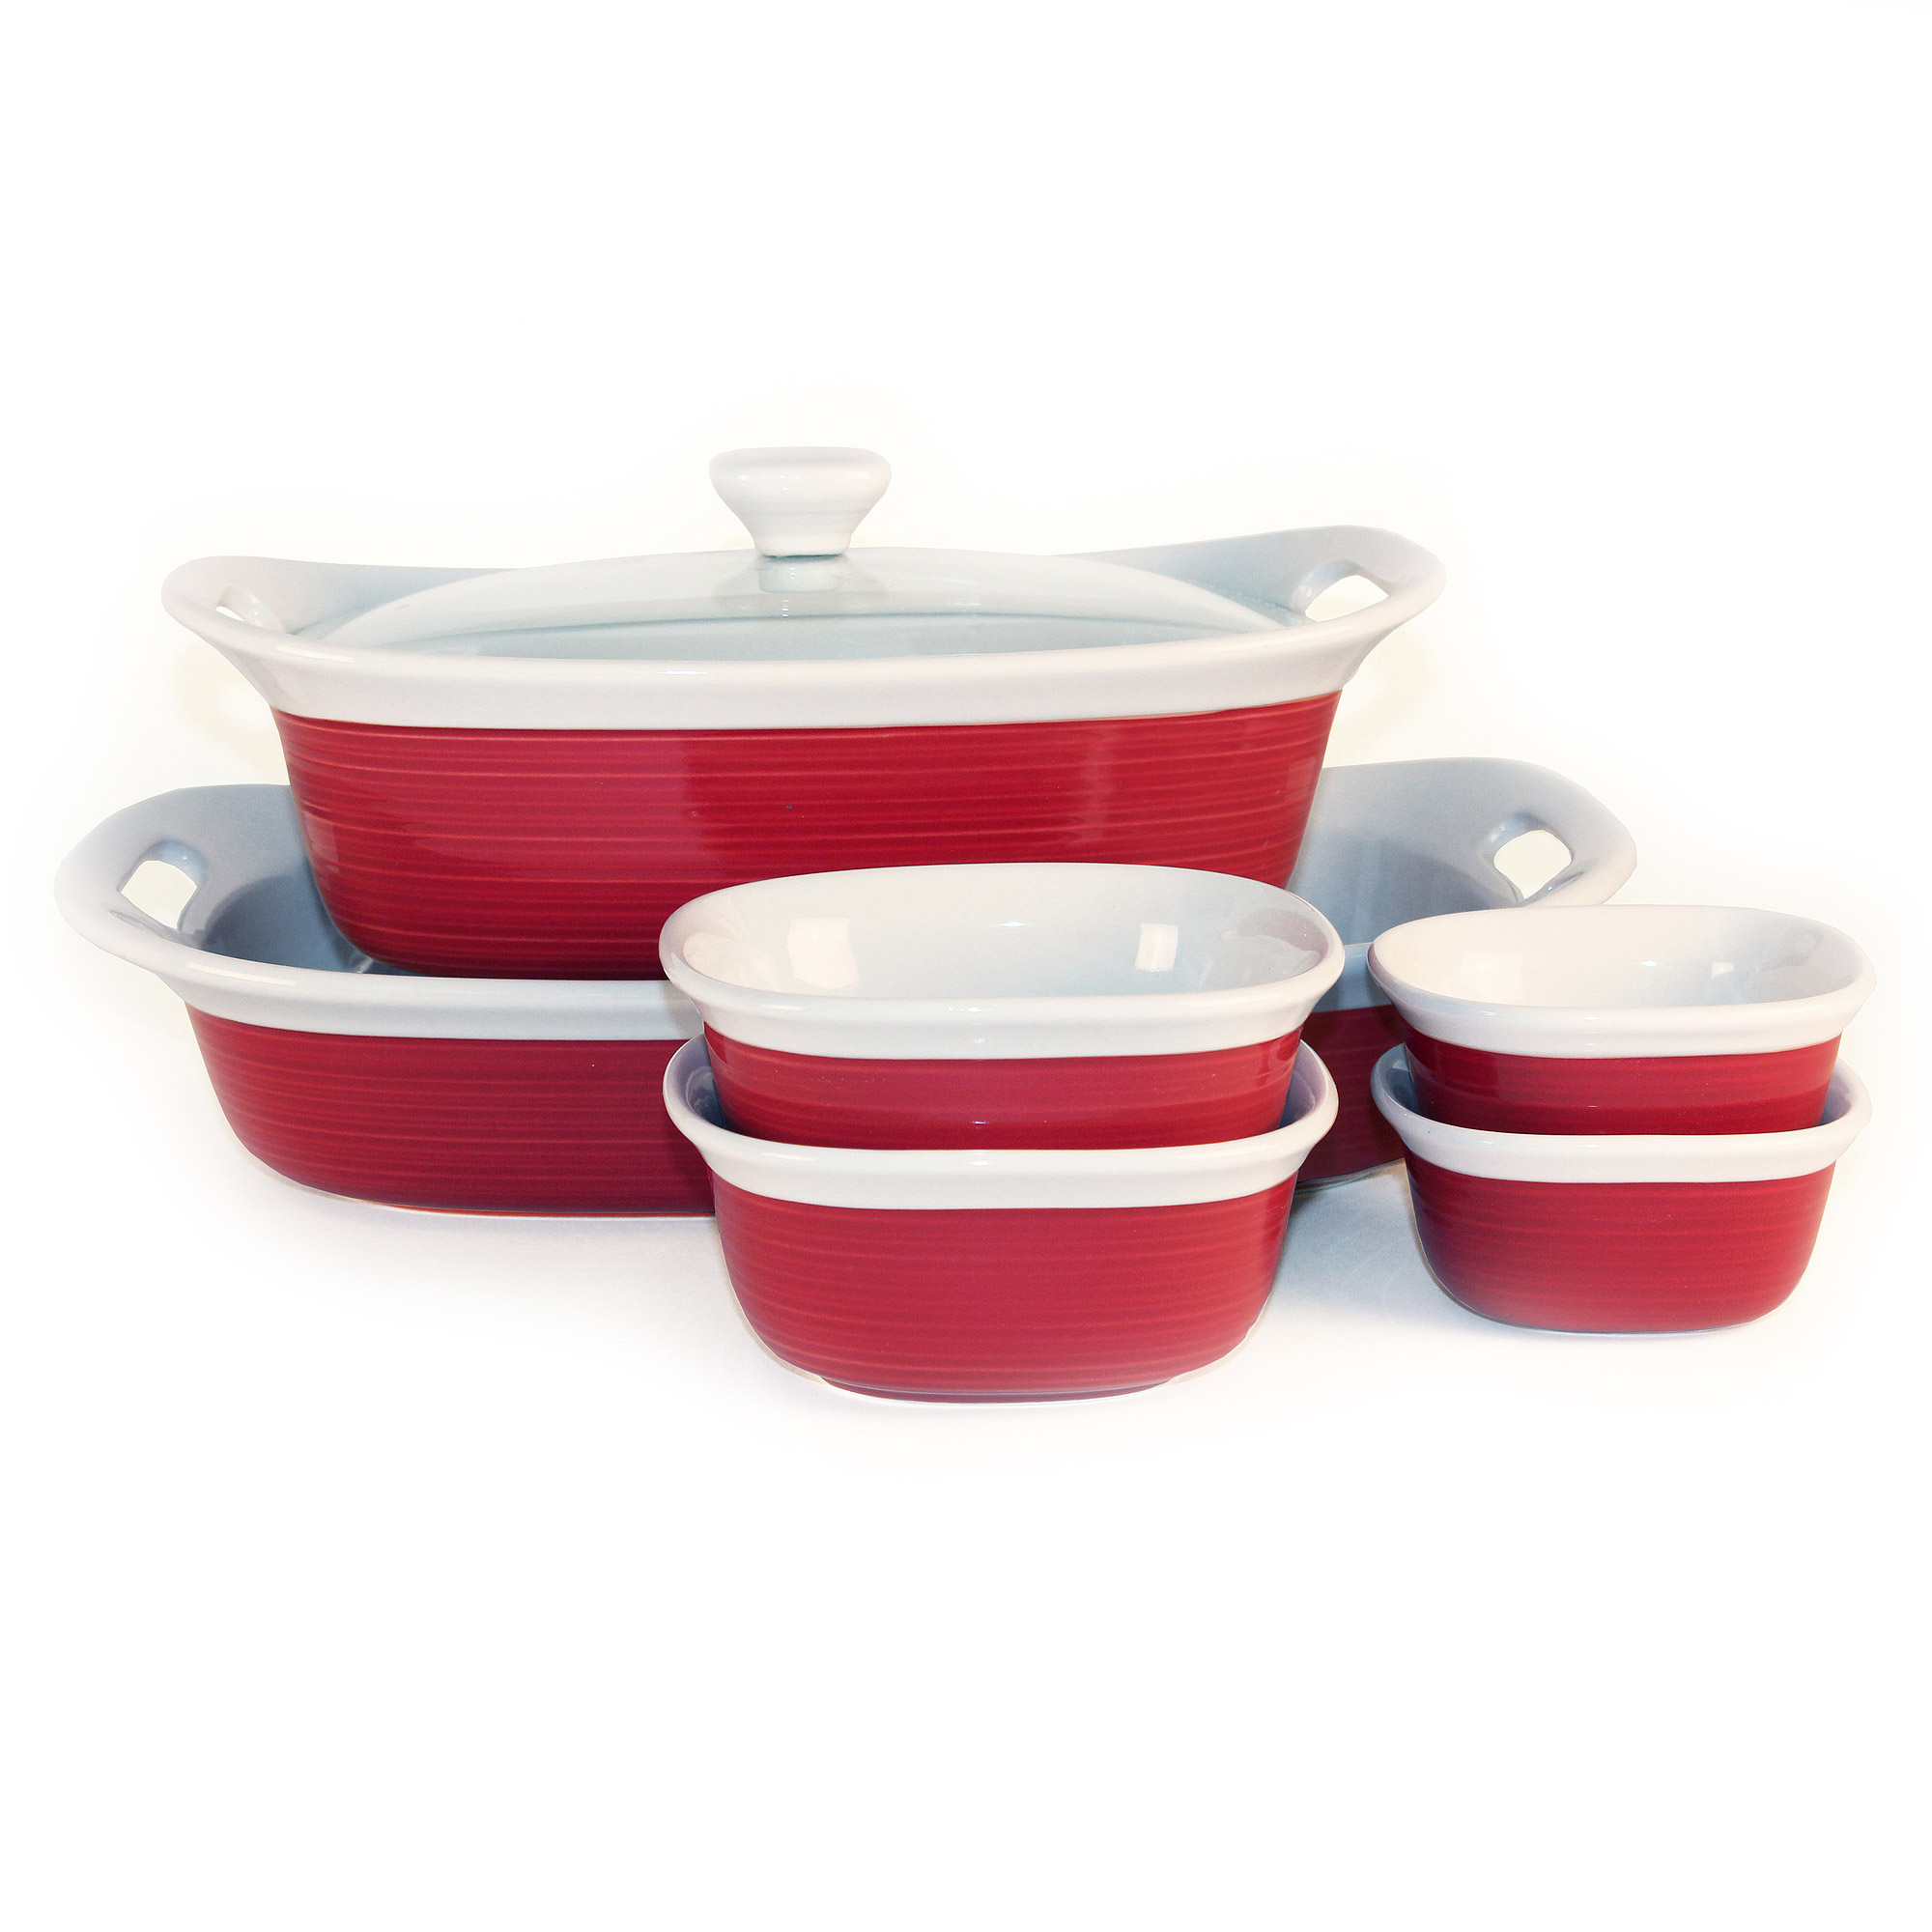 Corningware Etch 7-Piece Set  sc 1 st  Walmart.com & Corningware Etch 7-Piece Set - Walmart.com